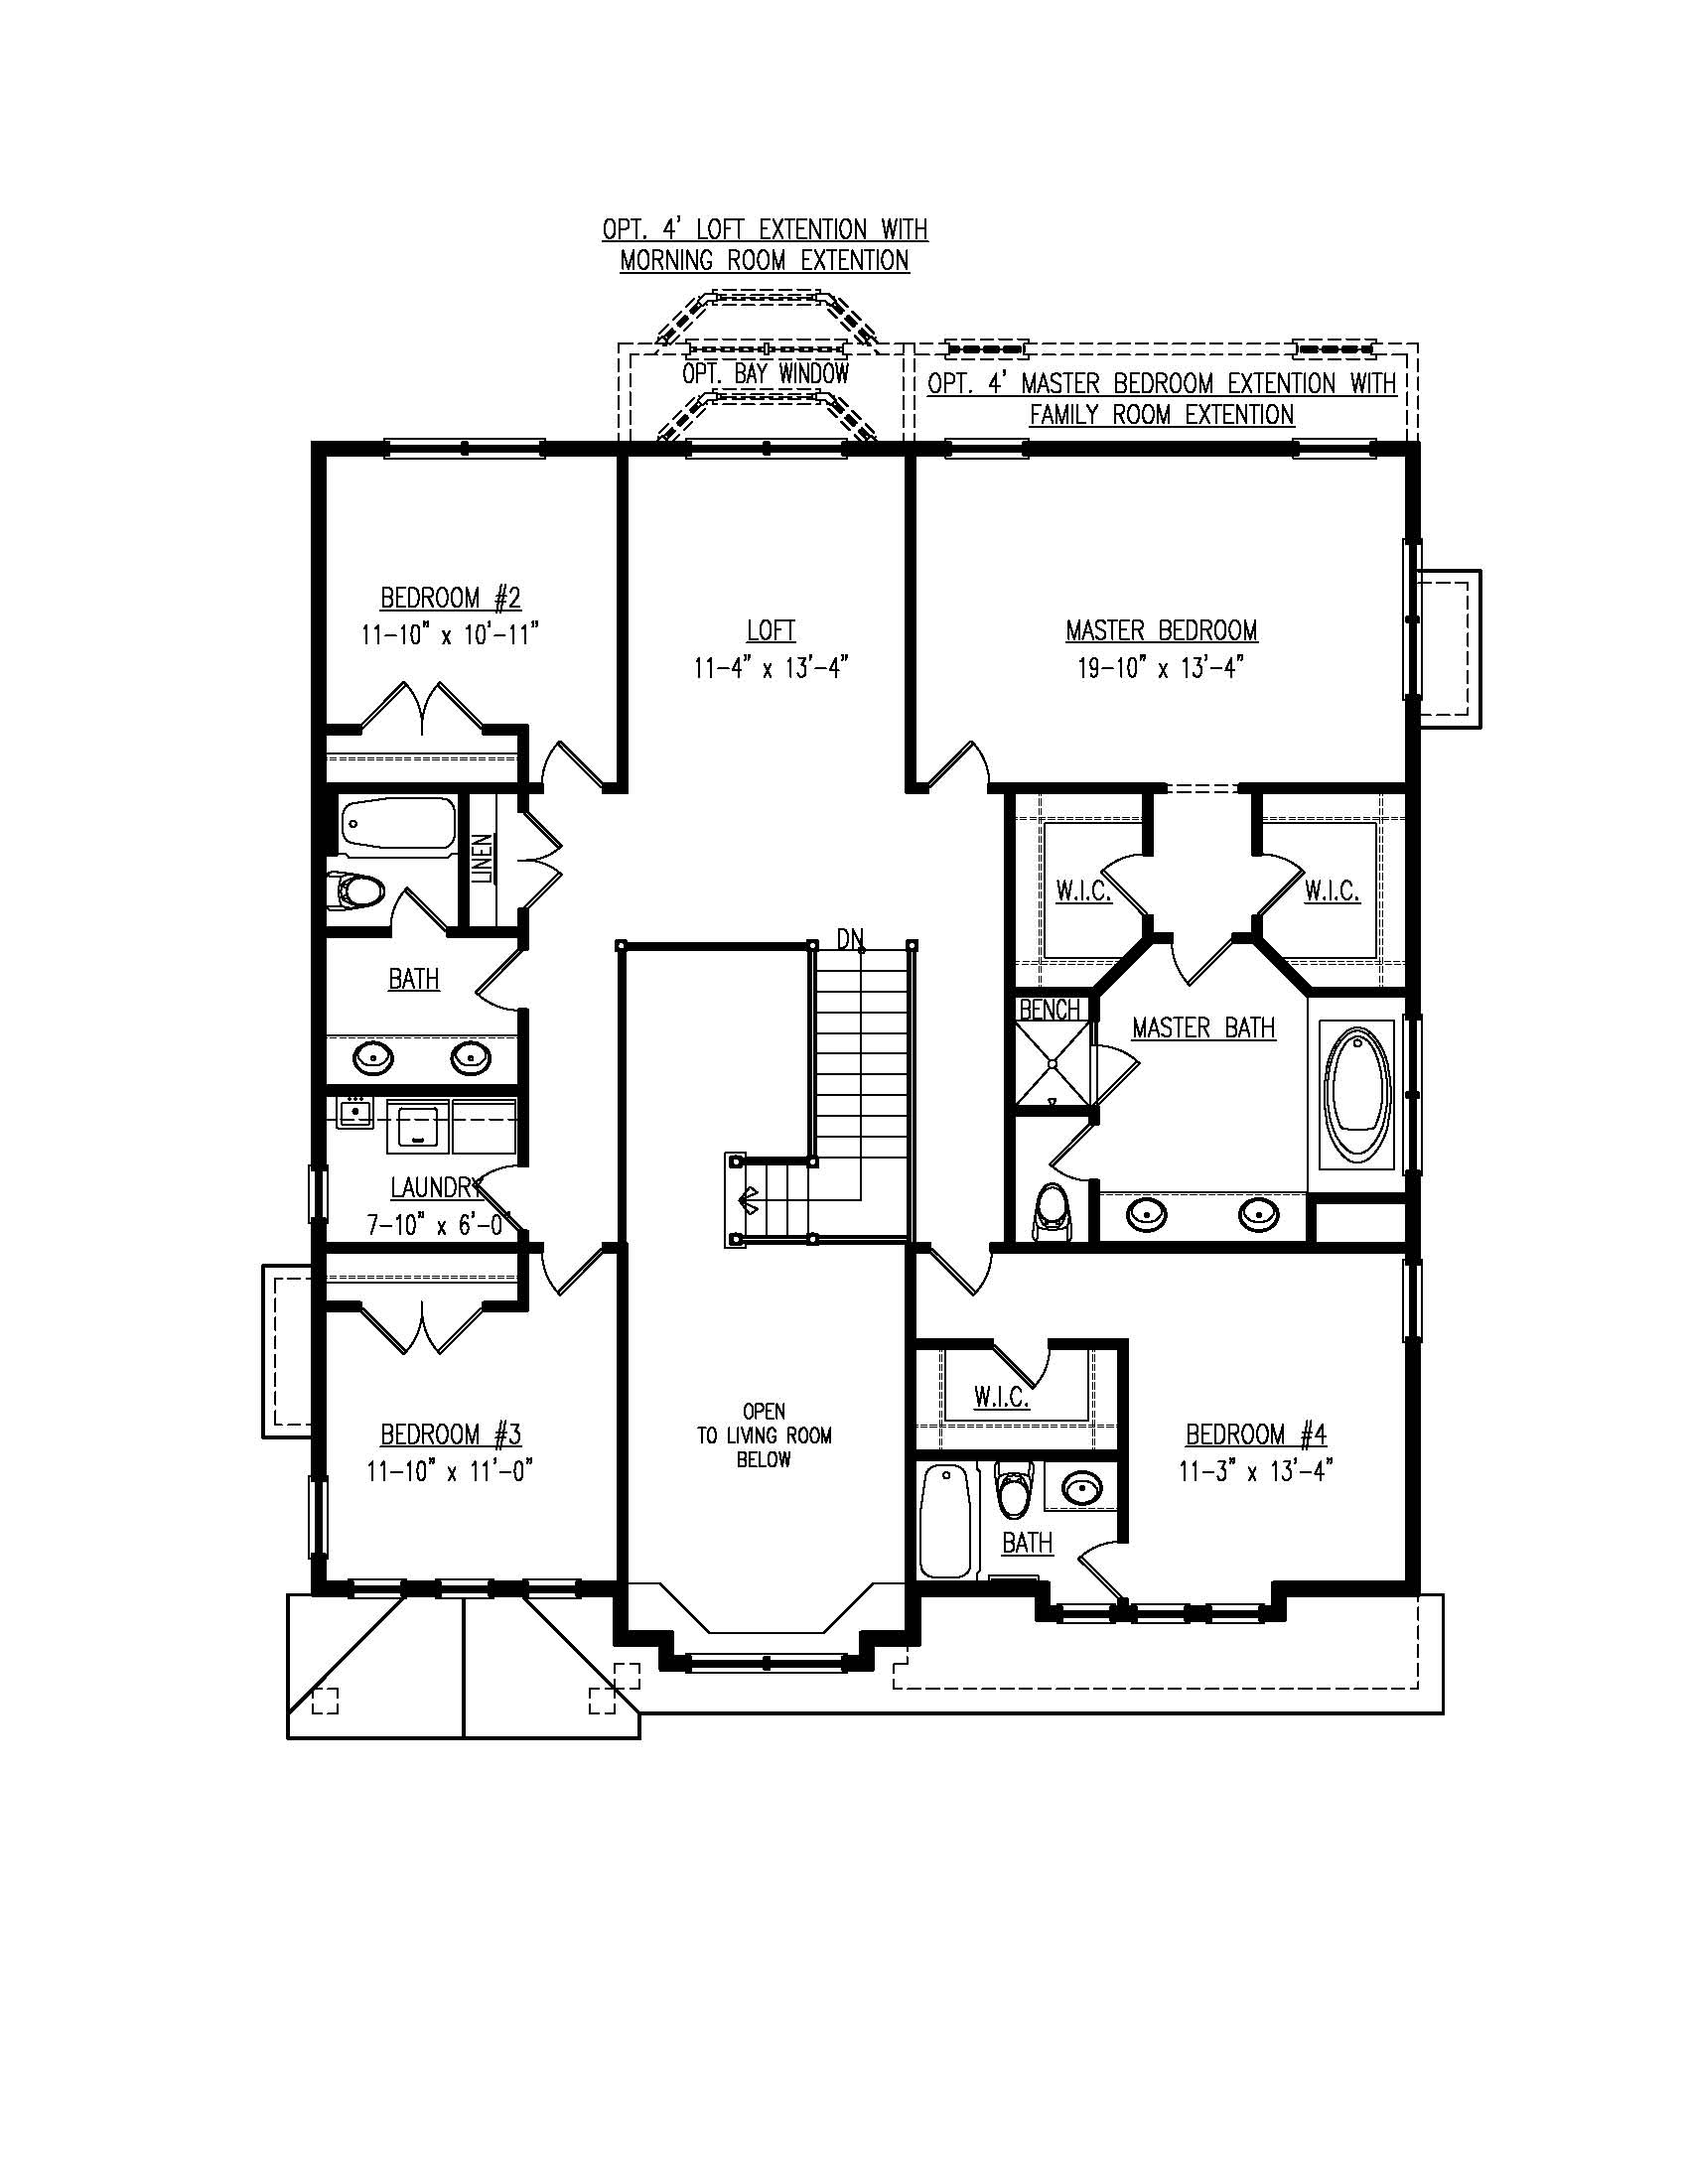 Second floor plan for the Mayberry model home.